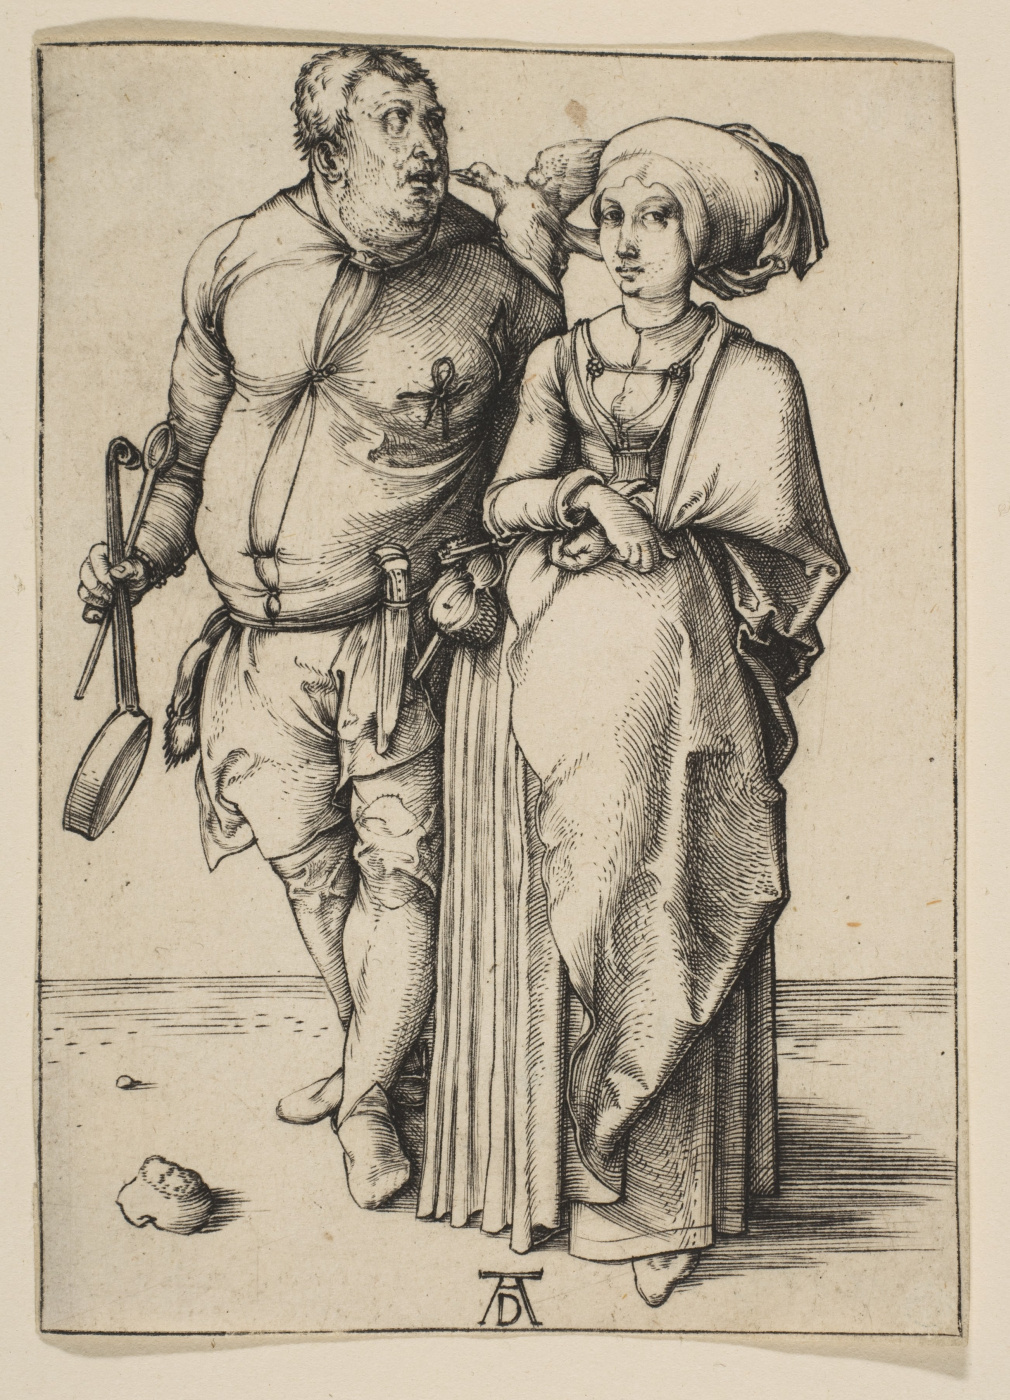 Albrecht Dürer. The chef and his wife